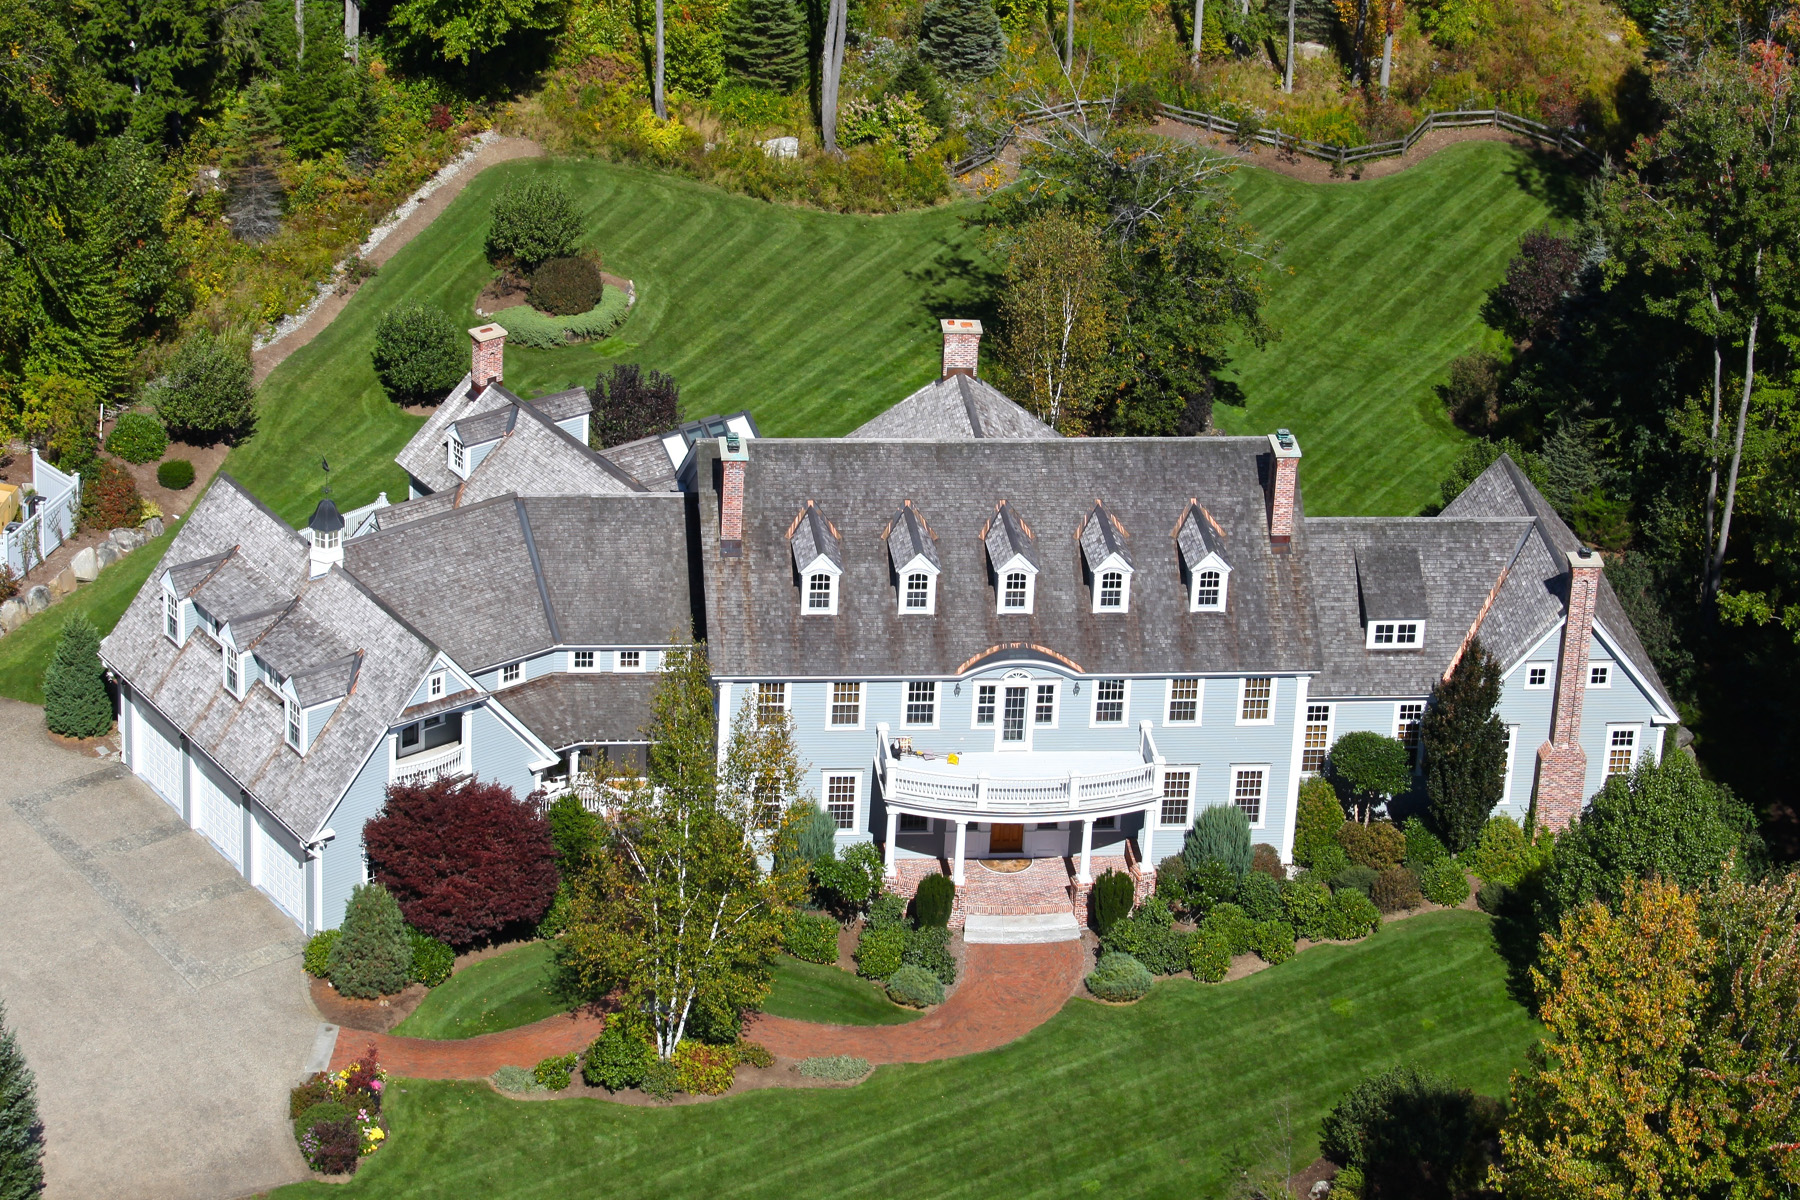 Single Family Home for Sale at Gracious 14 Room Estate 373 Lakeshore Dr New London, New Hampshire 03257 United States